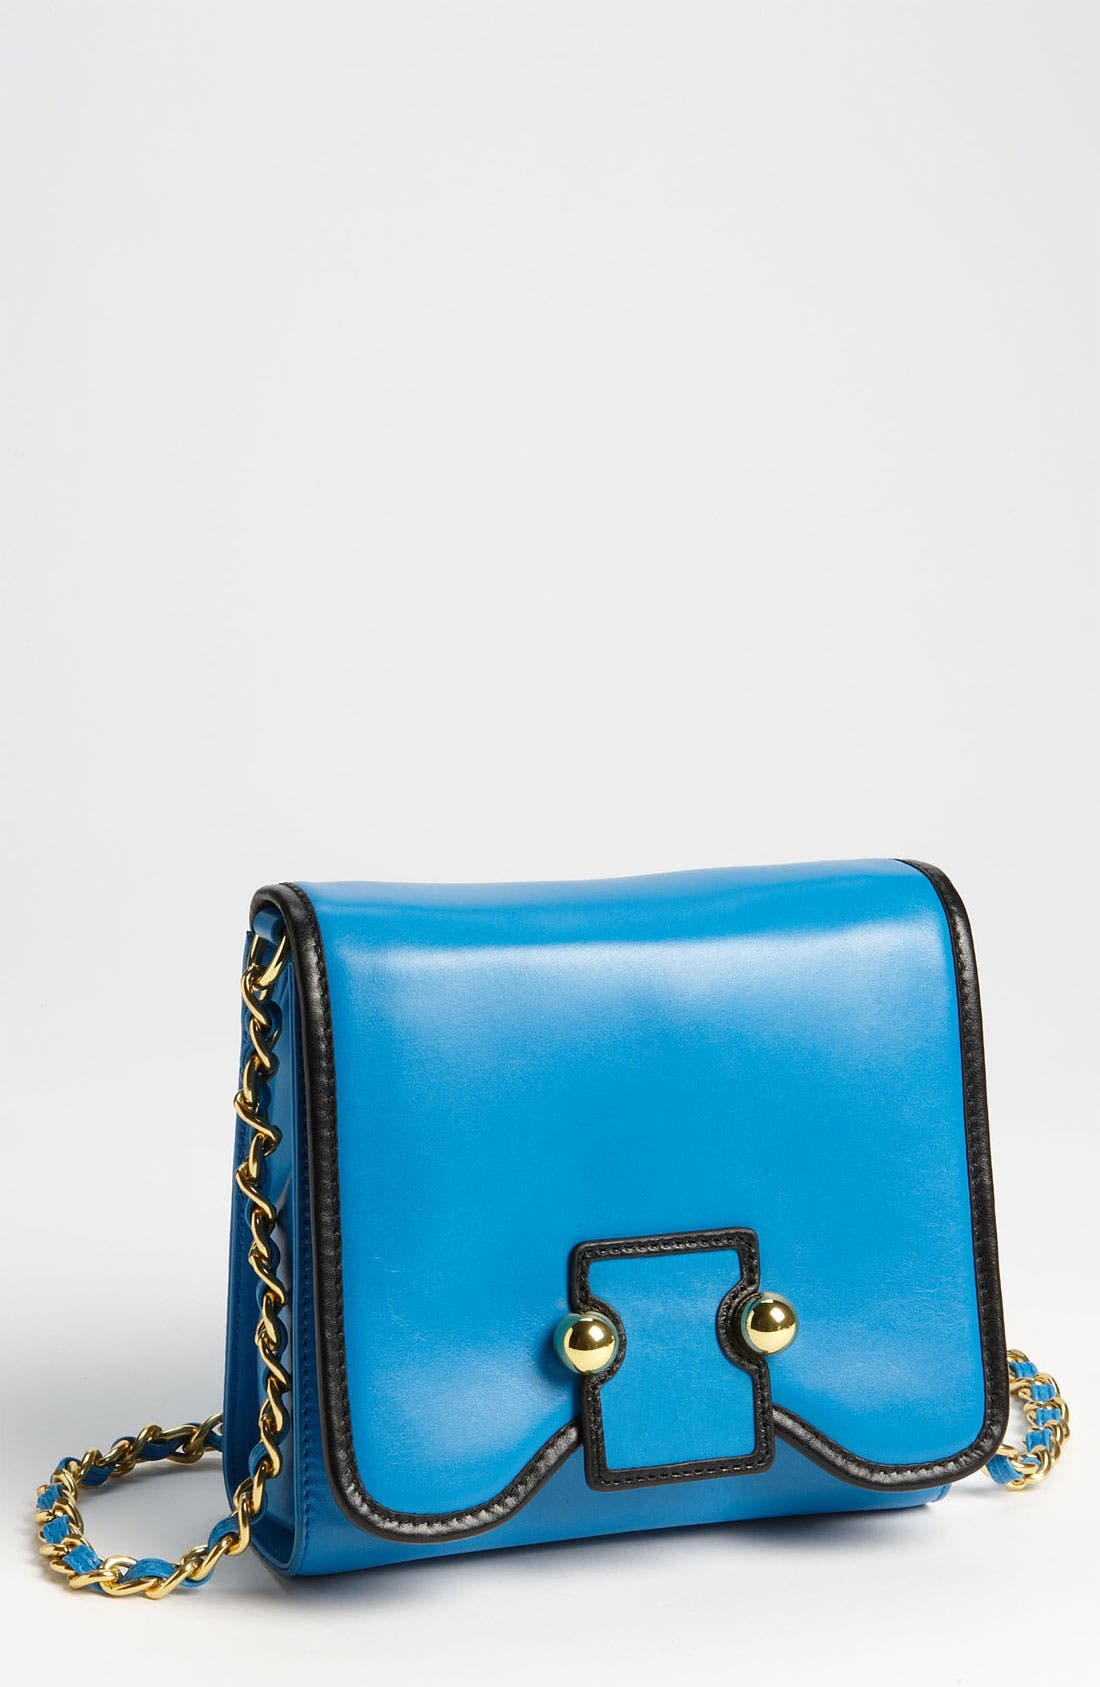 'Lucy' Crossbody Bag,                             Main thumbnail 1, color,                             432